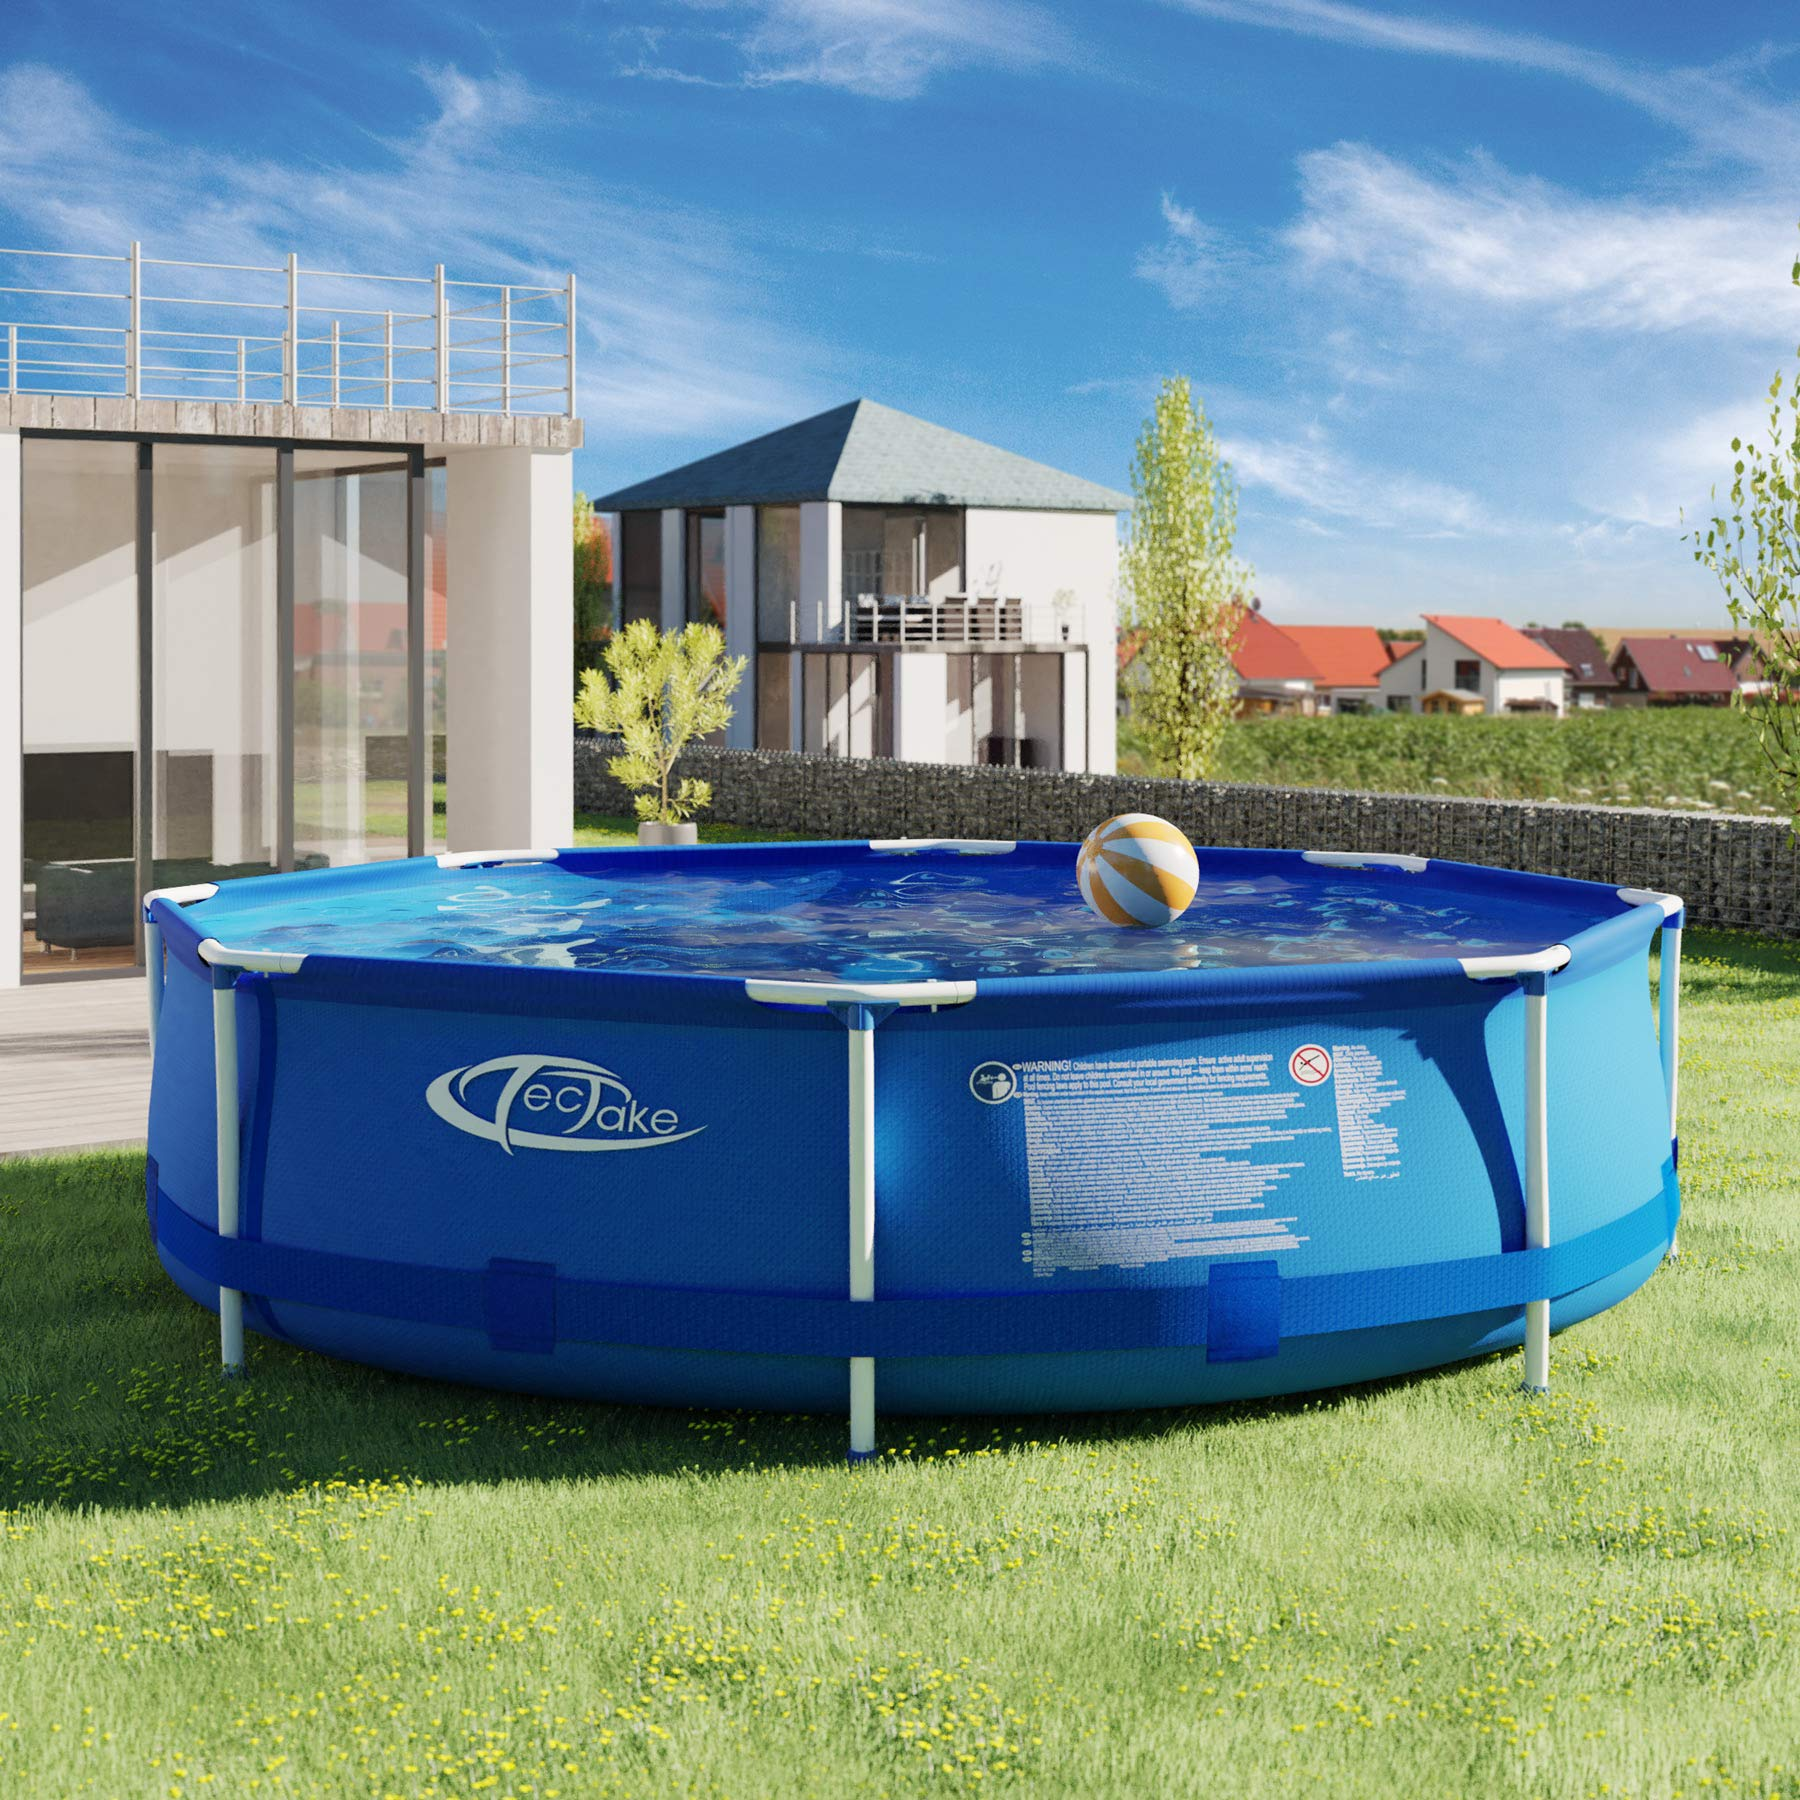 TecTake 800580 Piscina Desmontable, Swimming Pool, Tejido de PVC ...